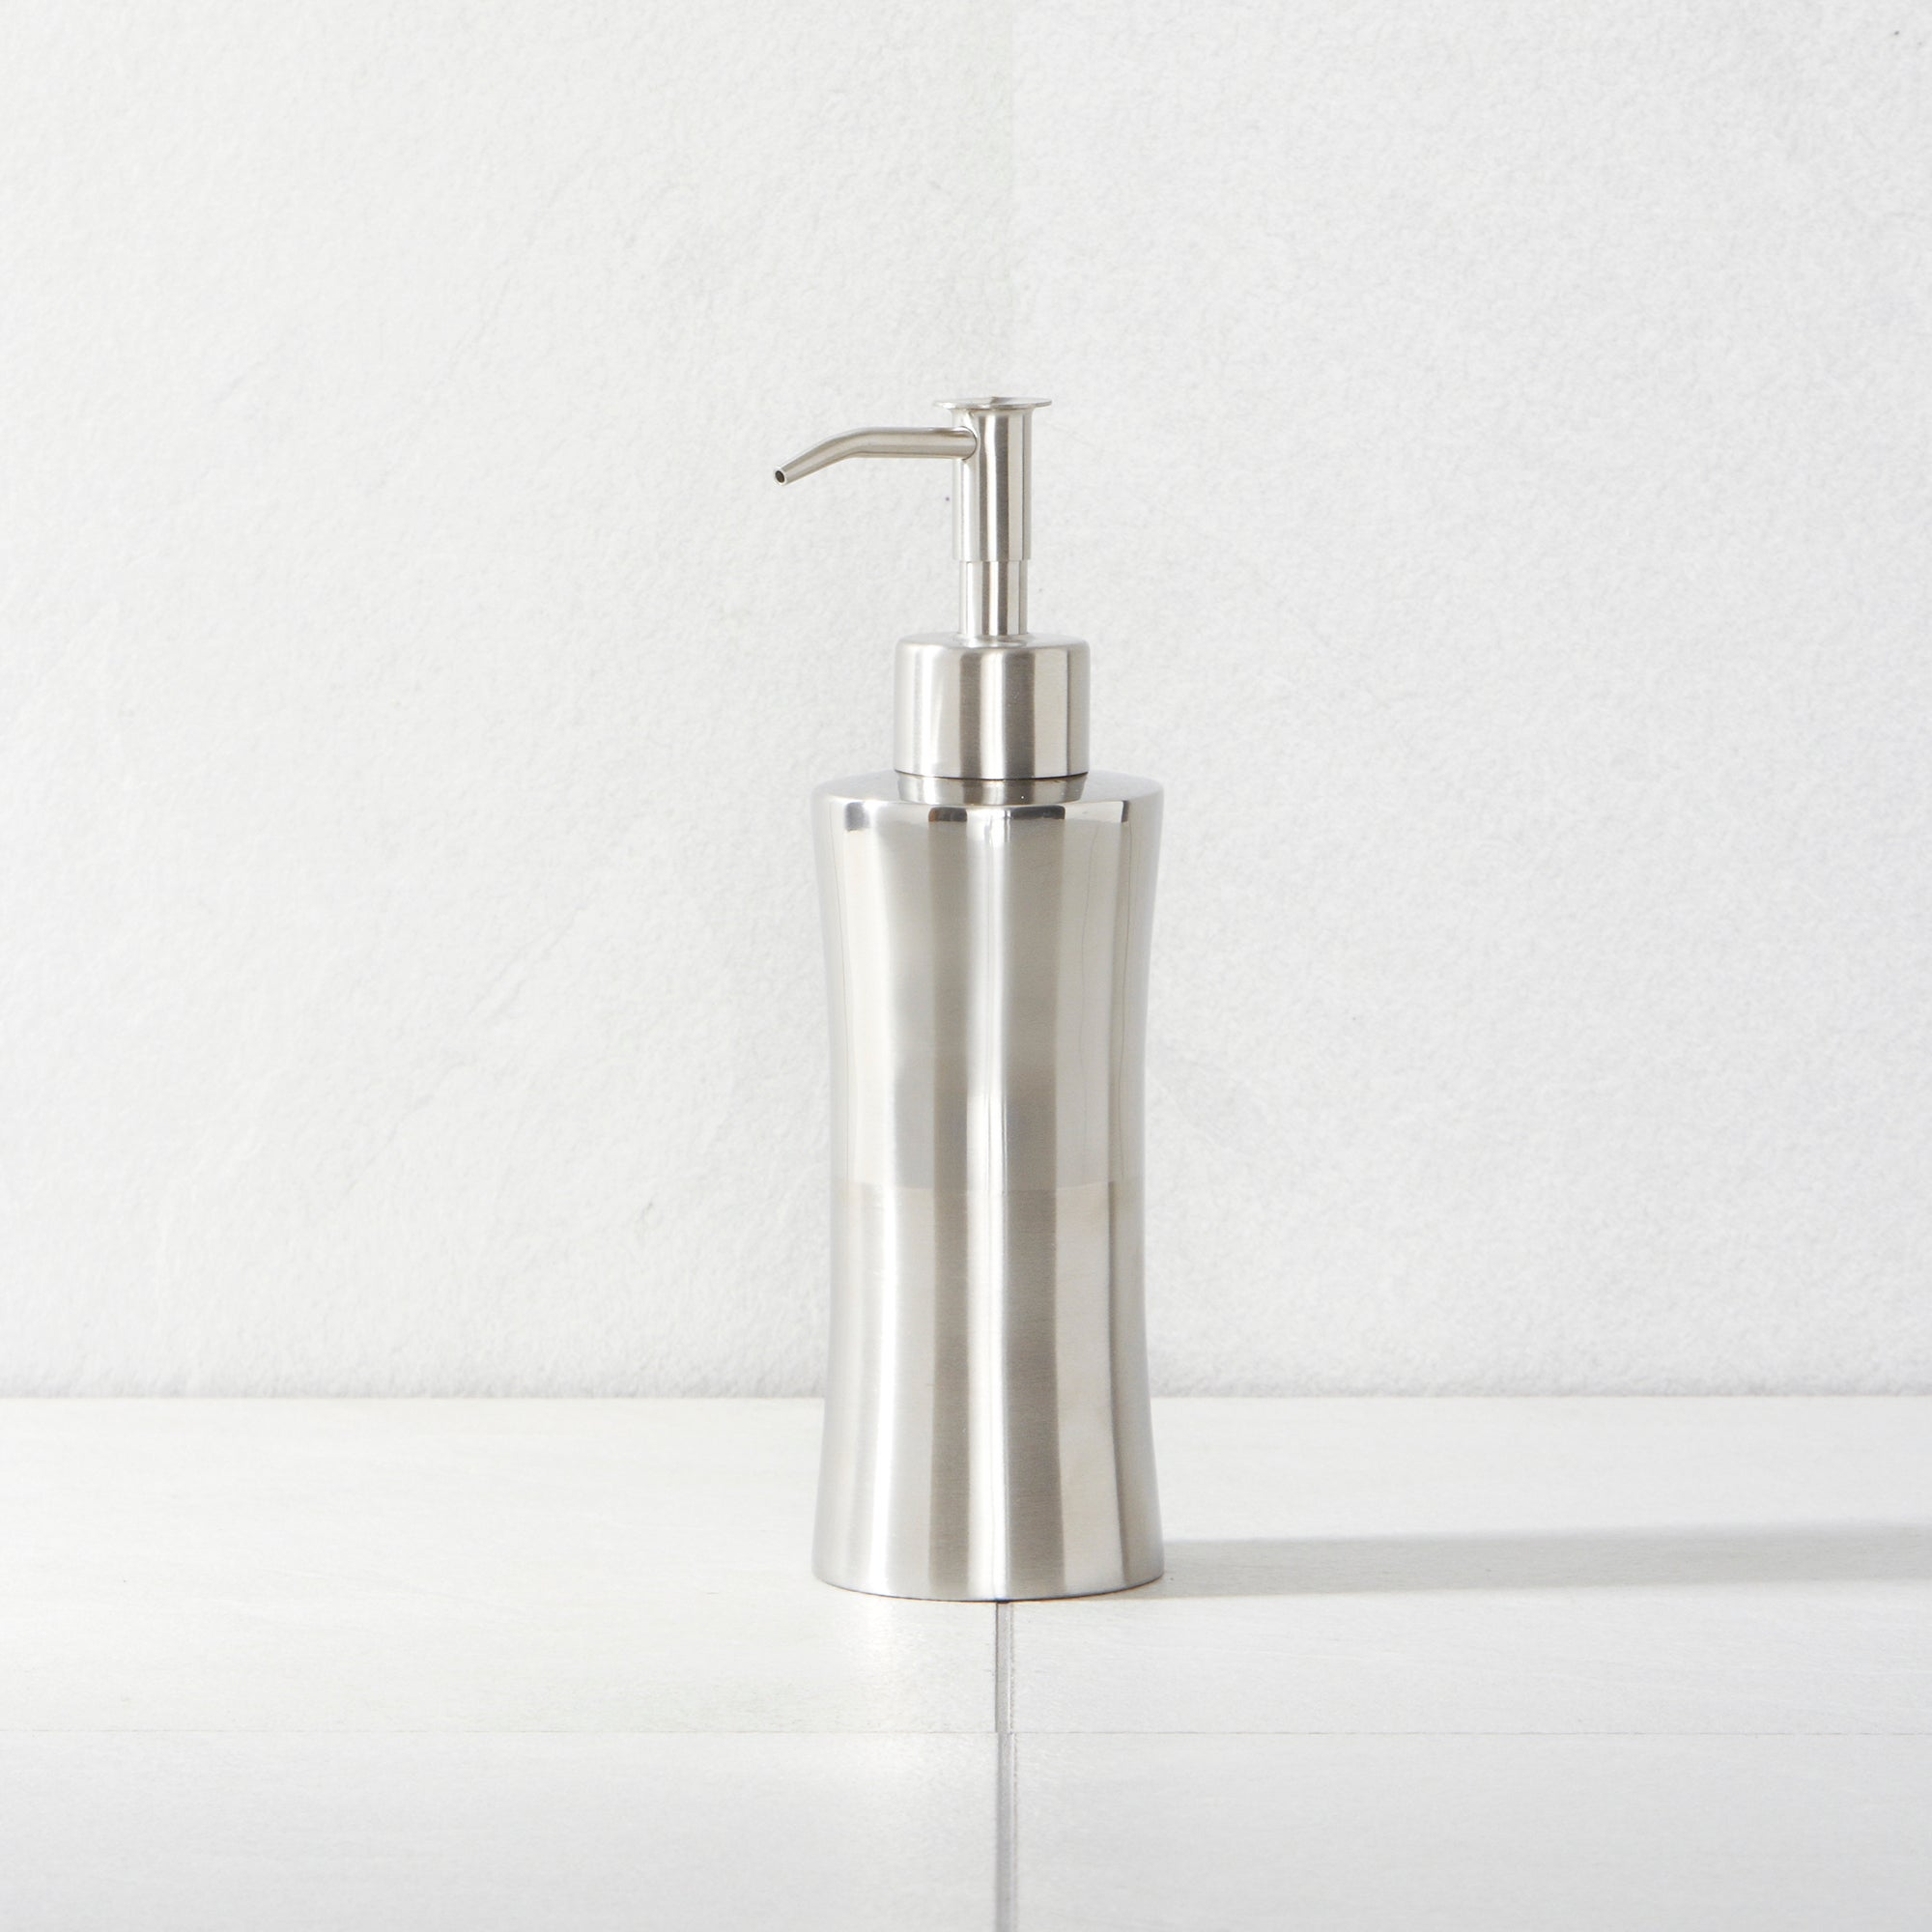 Bathroom Basics Soap Dispenser